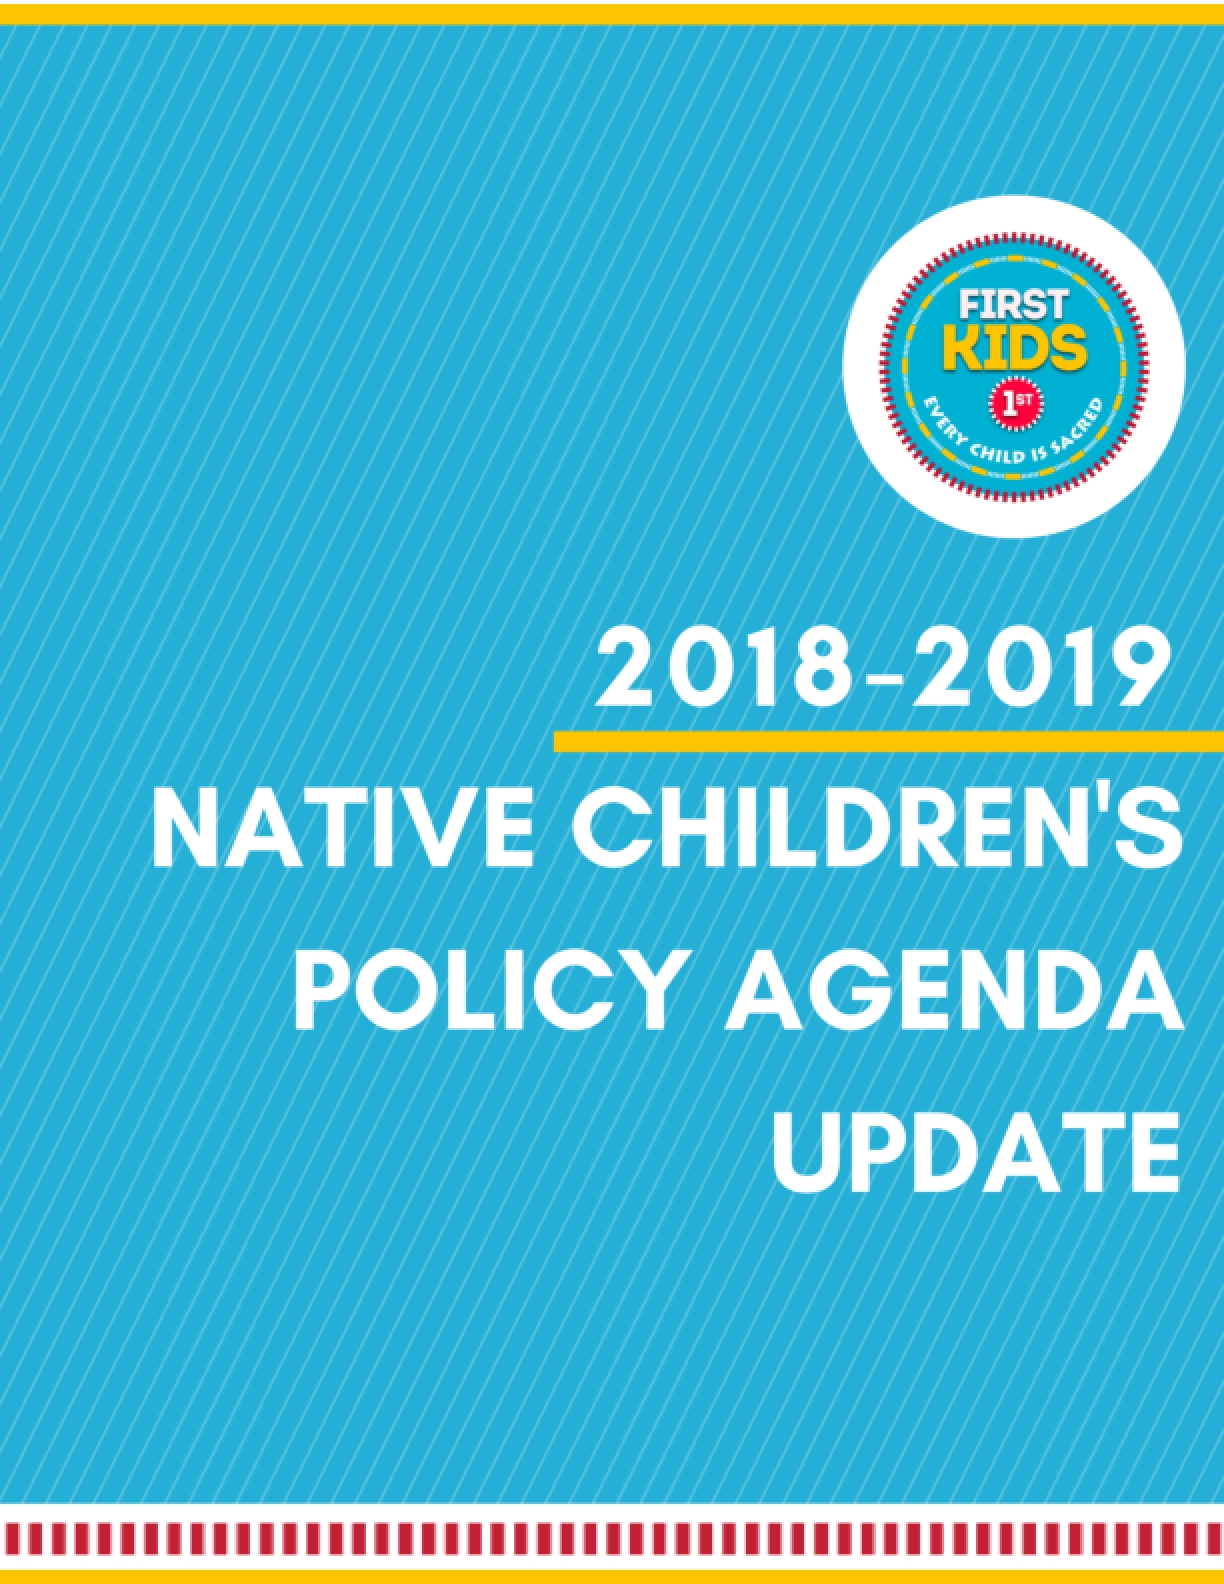 Native Children's Policy Agenda: 2018-2019 UPDATE